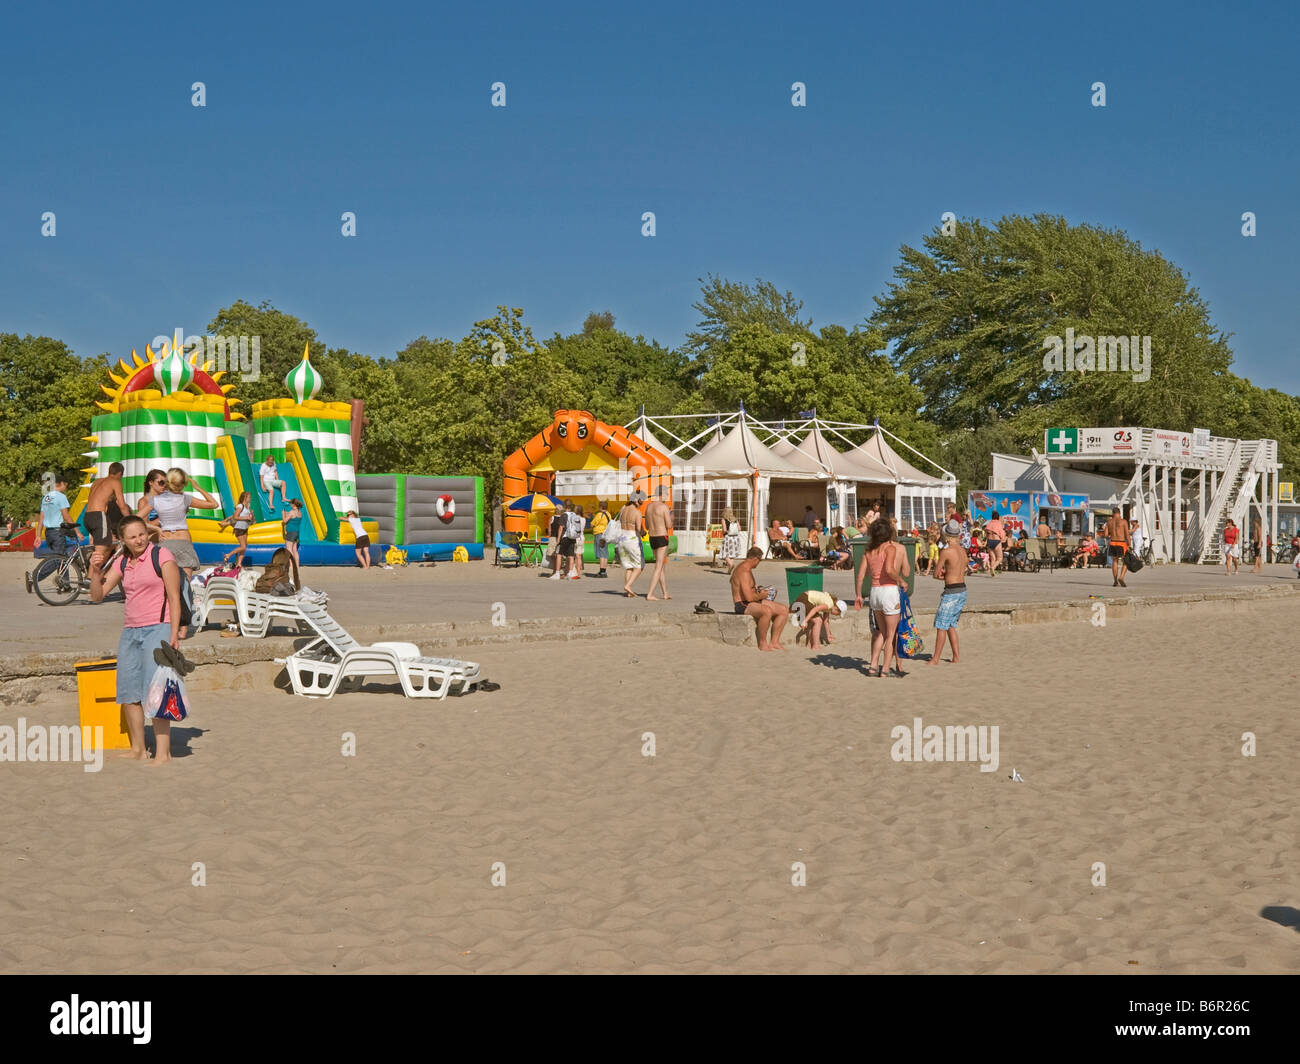 bouncing castle for kids on beach wendy houses for children at